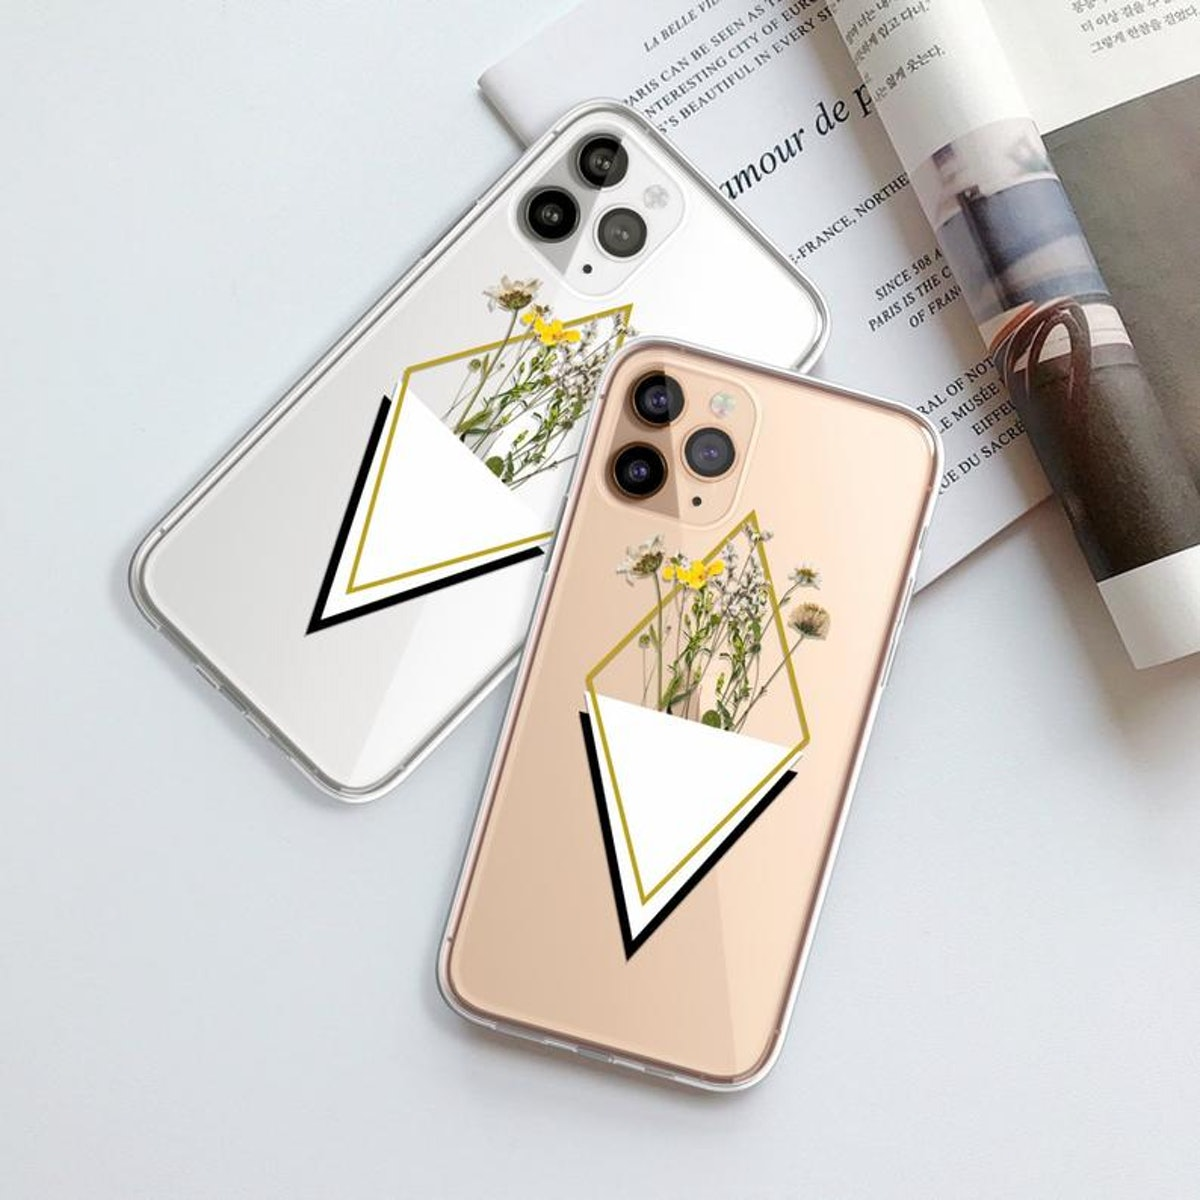 Cute Minimal Aesthetic Pressed Wildflower Print Clear Phone Case For iPhone 12 Mini